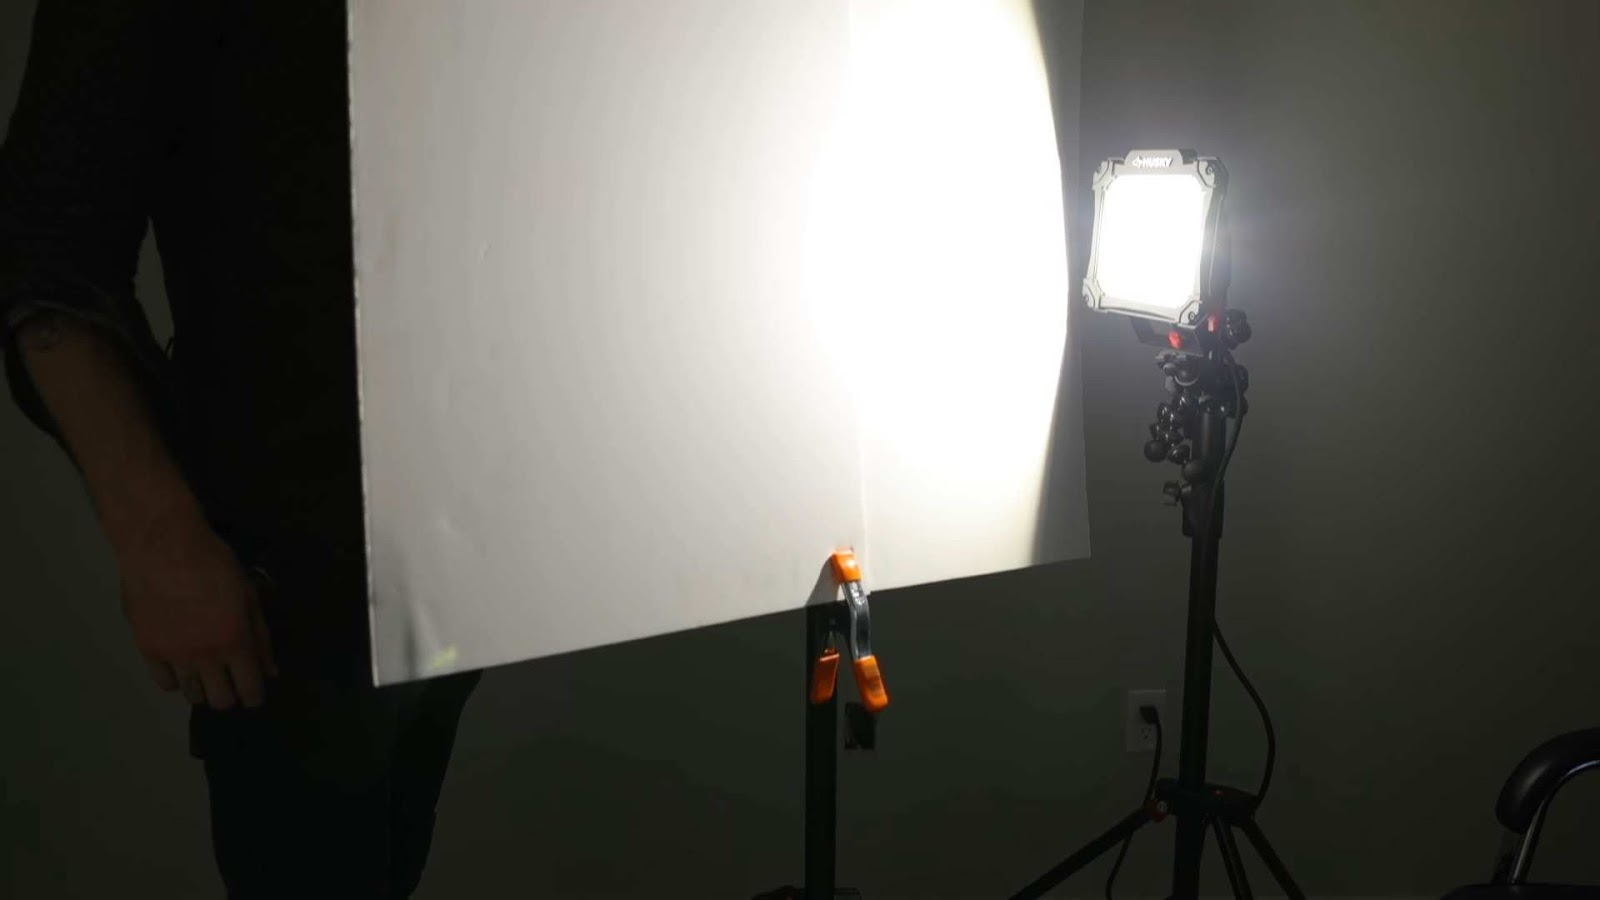 DIY LIGHTING SETUP on a Budget!